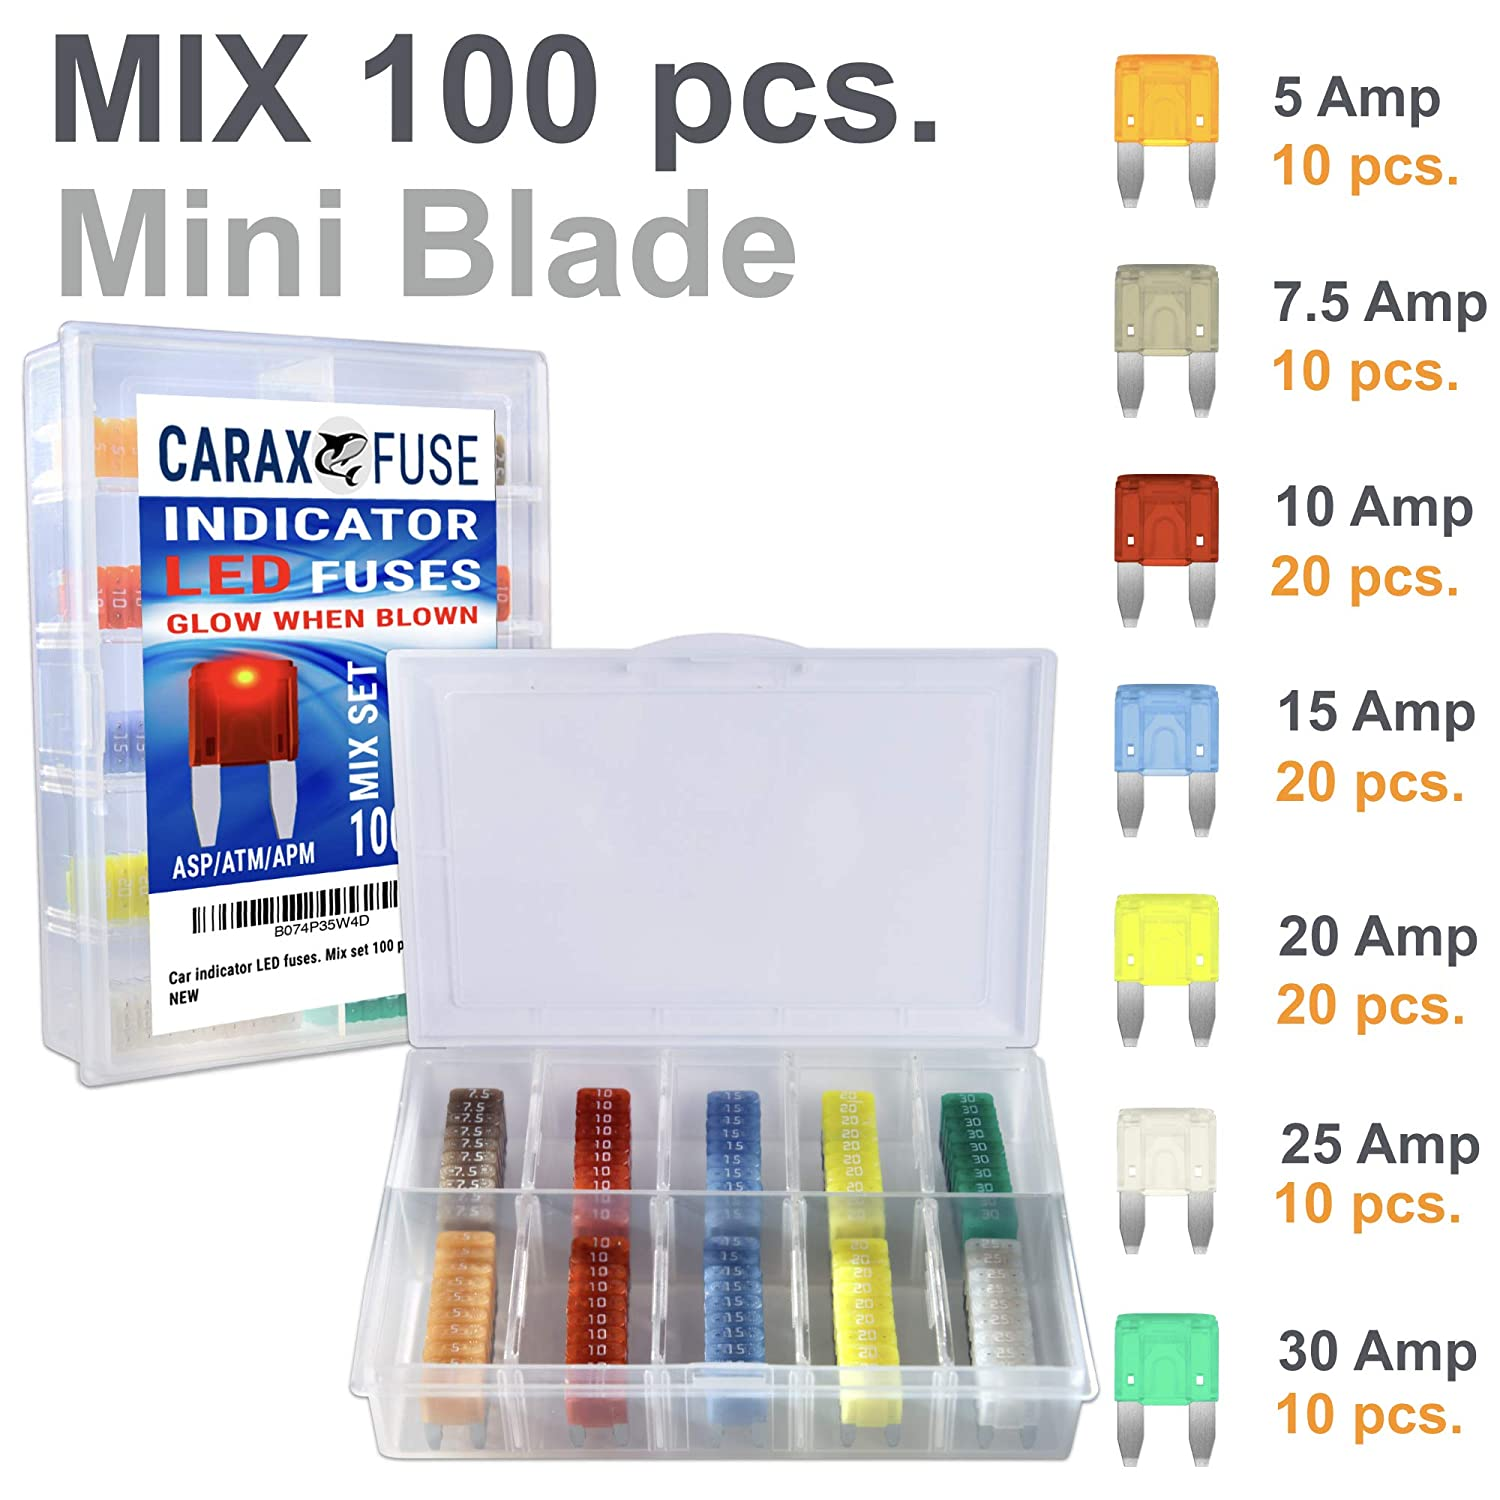 Smart Glow Fuse MINI Blade Fuse Kit Assortment Car Fuse Automotive Assorted Replacement Set 100 pcs PREMIUM Box Auto Fuses That Glow When Blown Easy Identification Indicator Illuminating Fuse